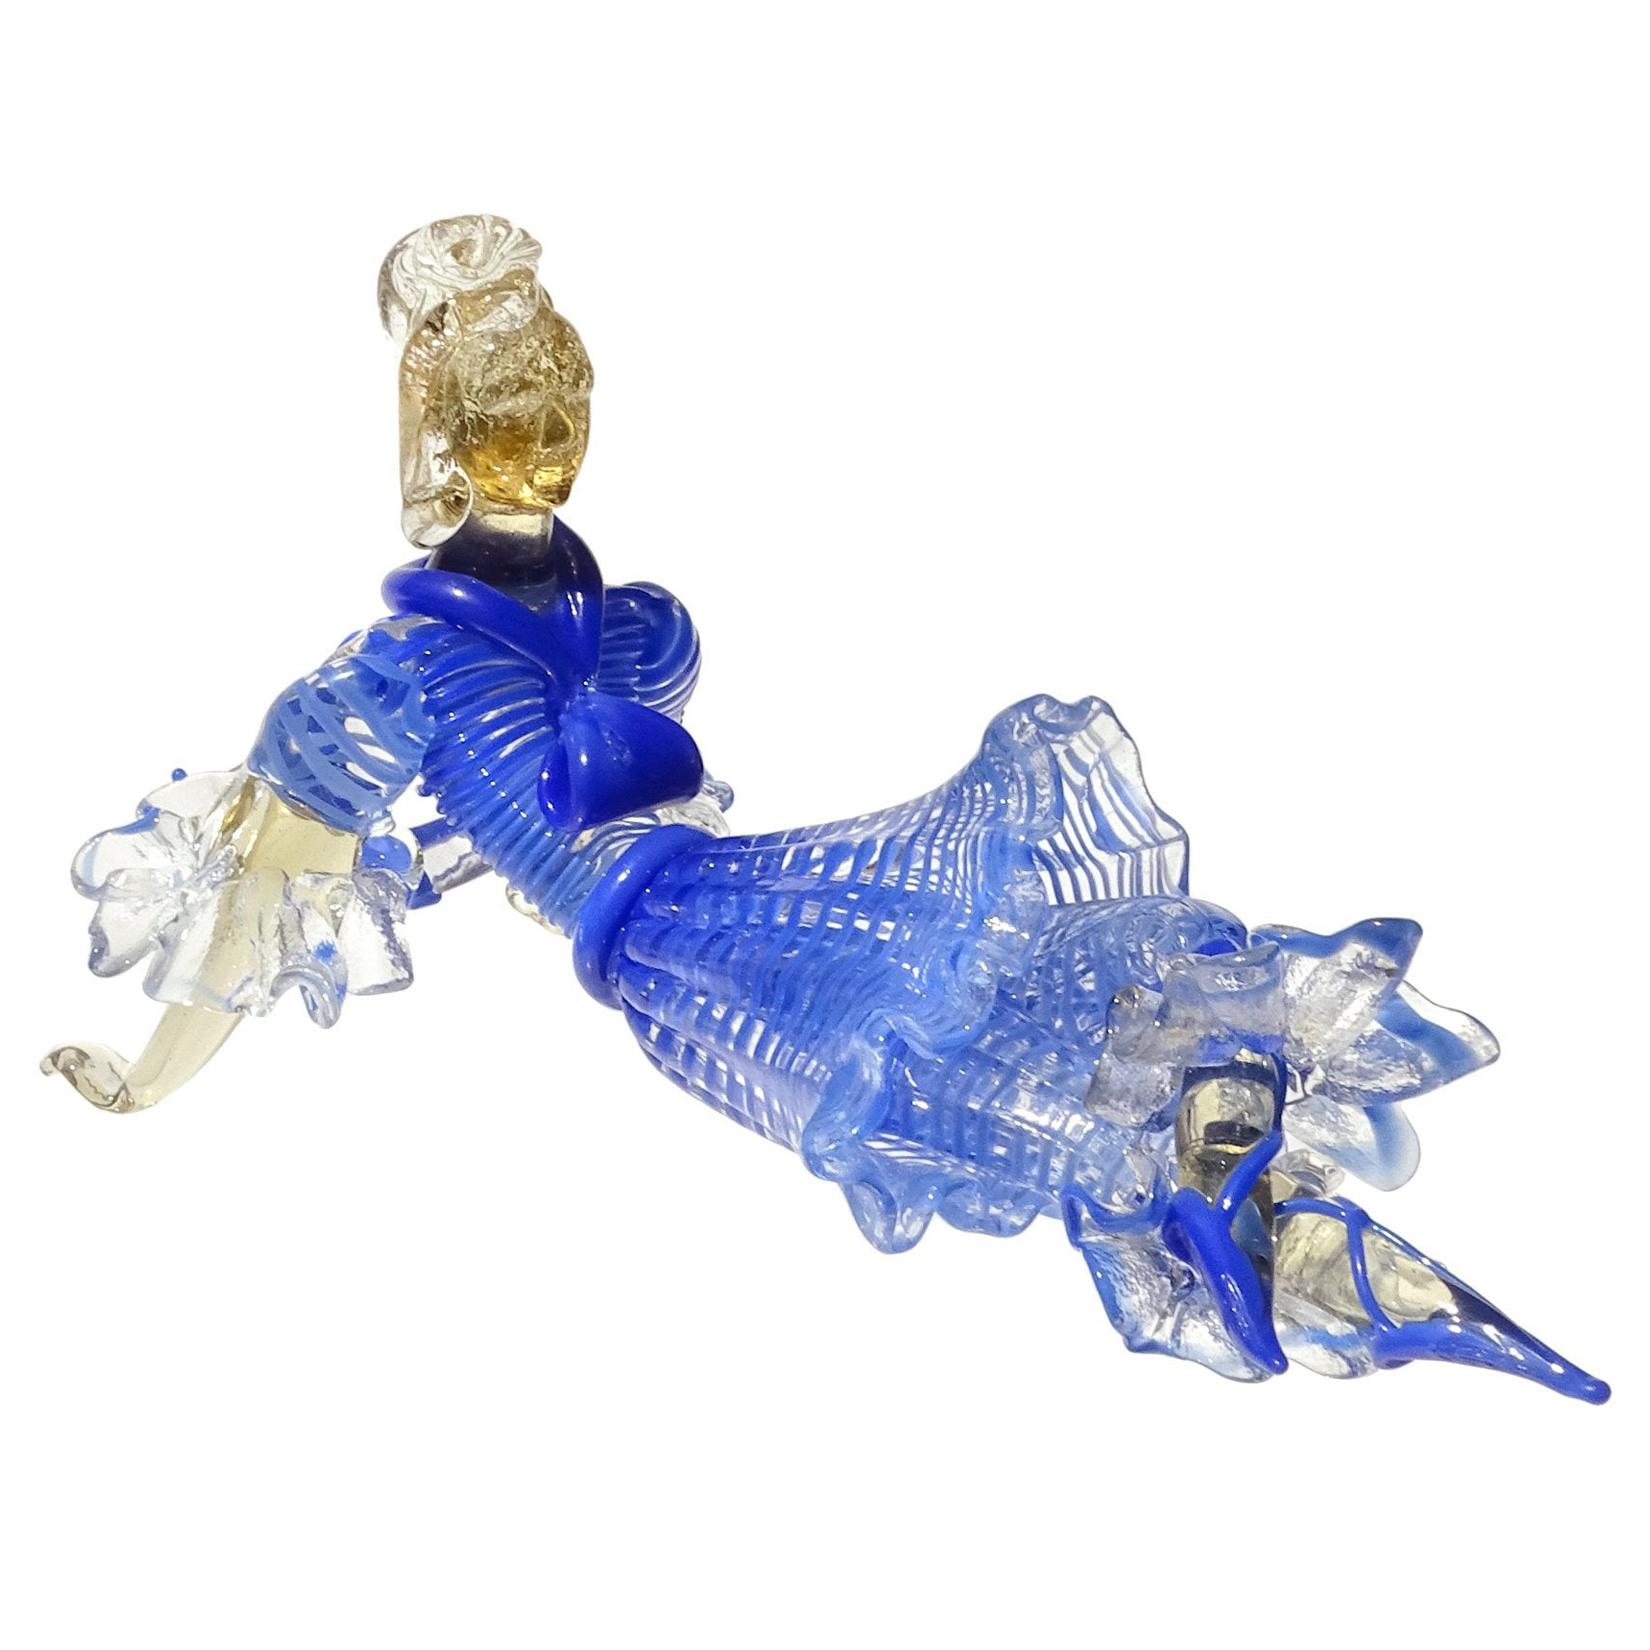 Seguso Vetri d'Arte Murano Blue Stripes Dress Italian Art Glass Ballerina Figure